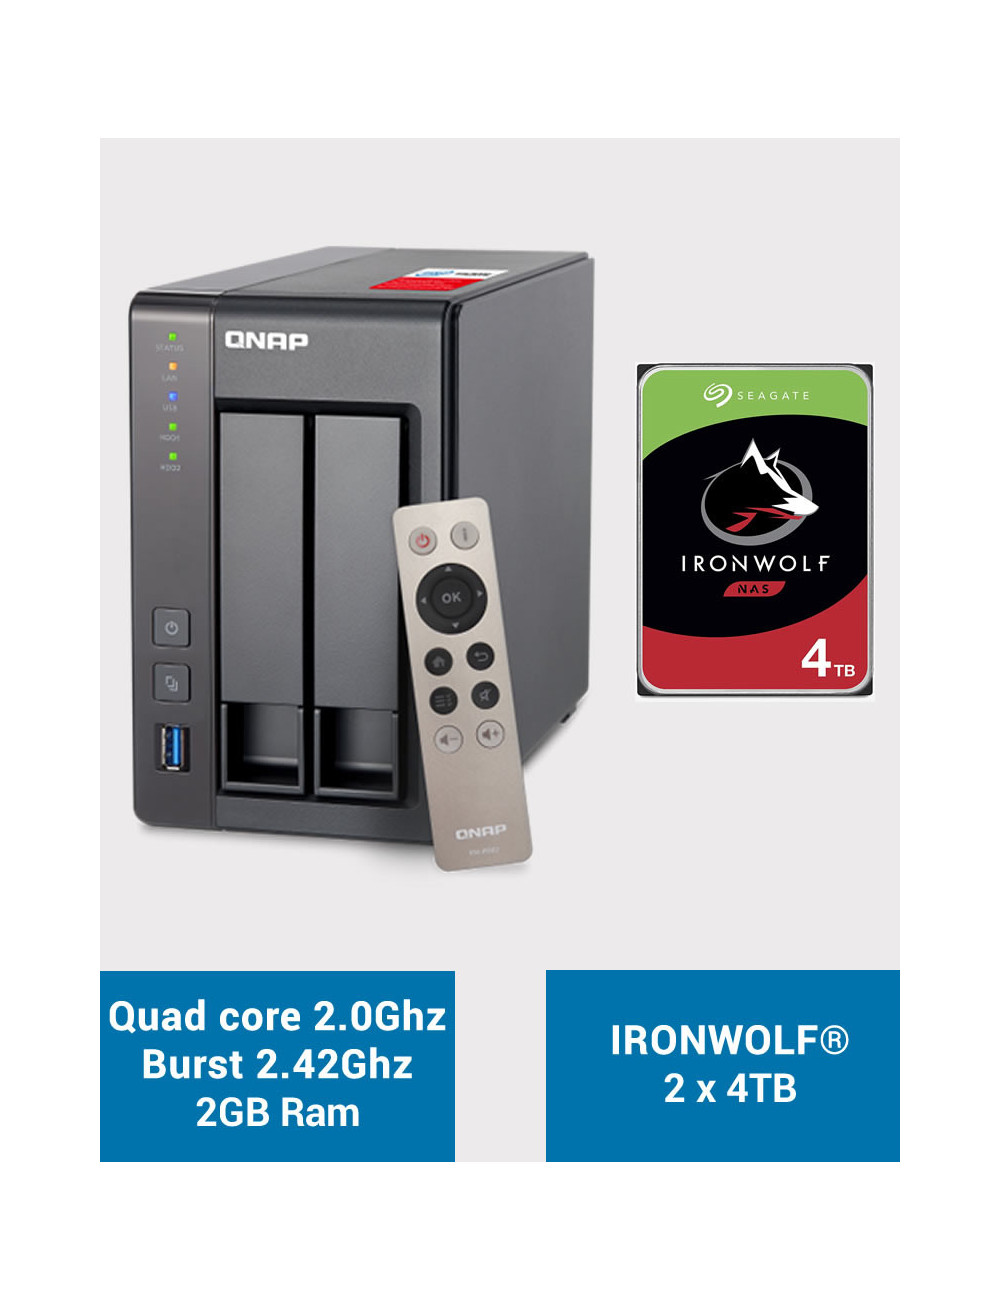 QNAP TS-251+ Serveur NAS IRONWOLF 8 To